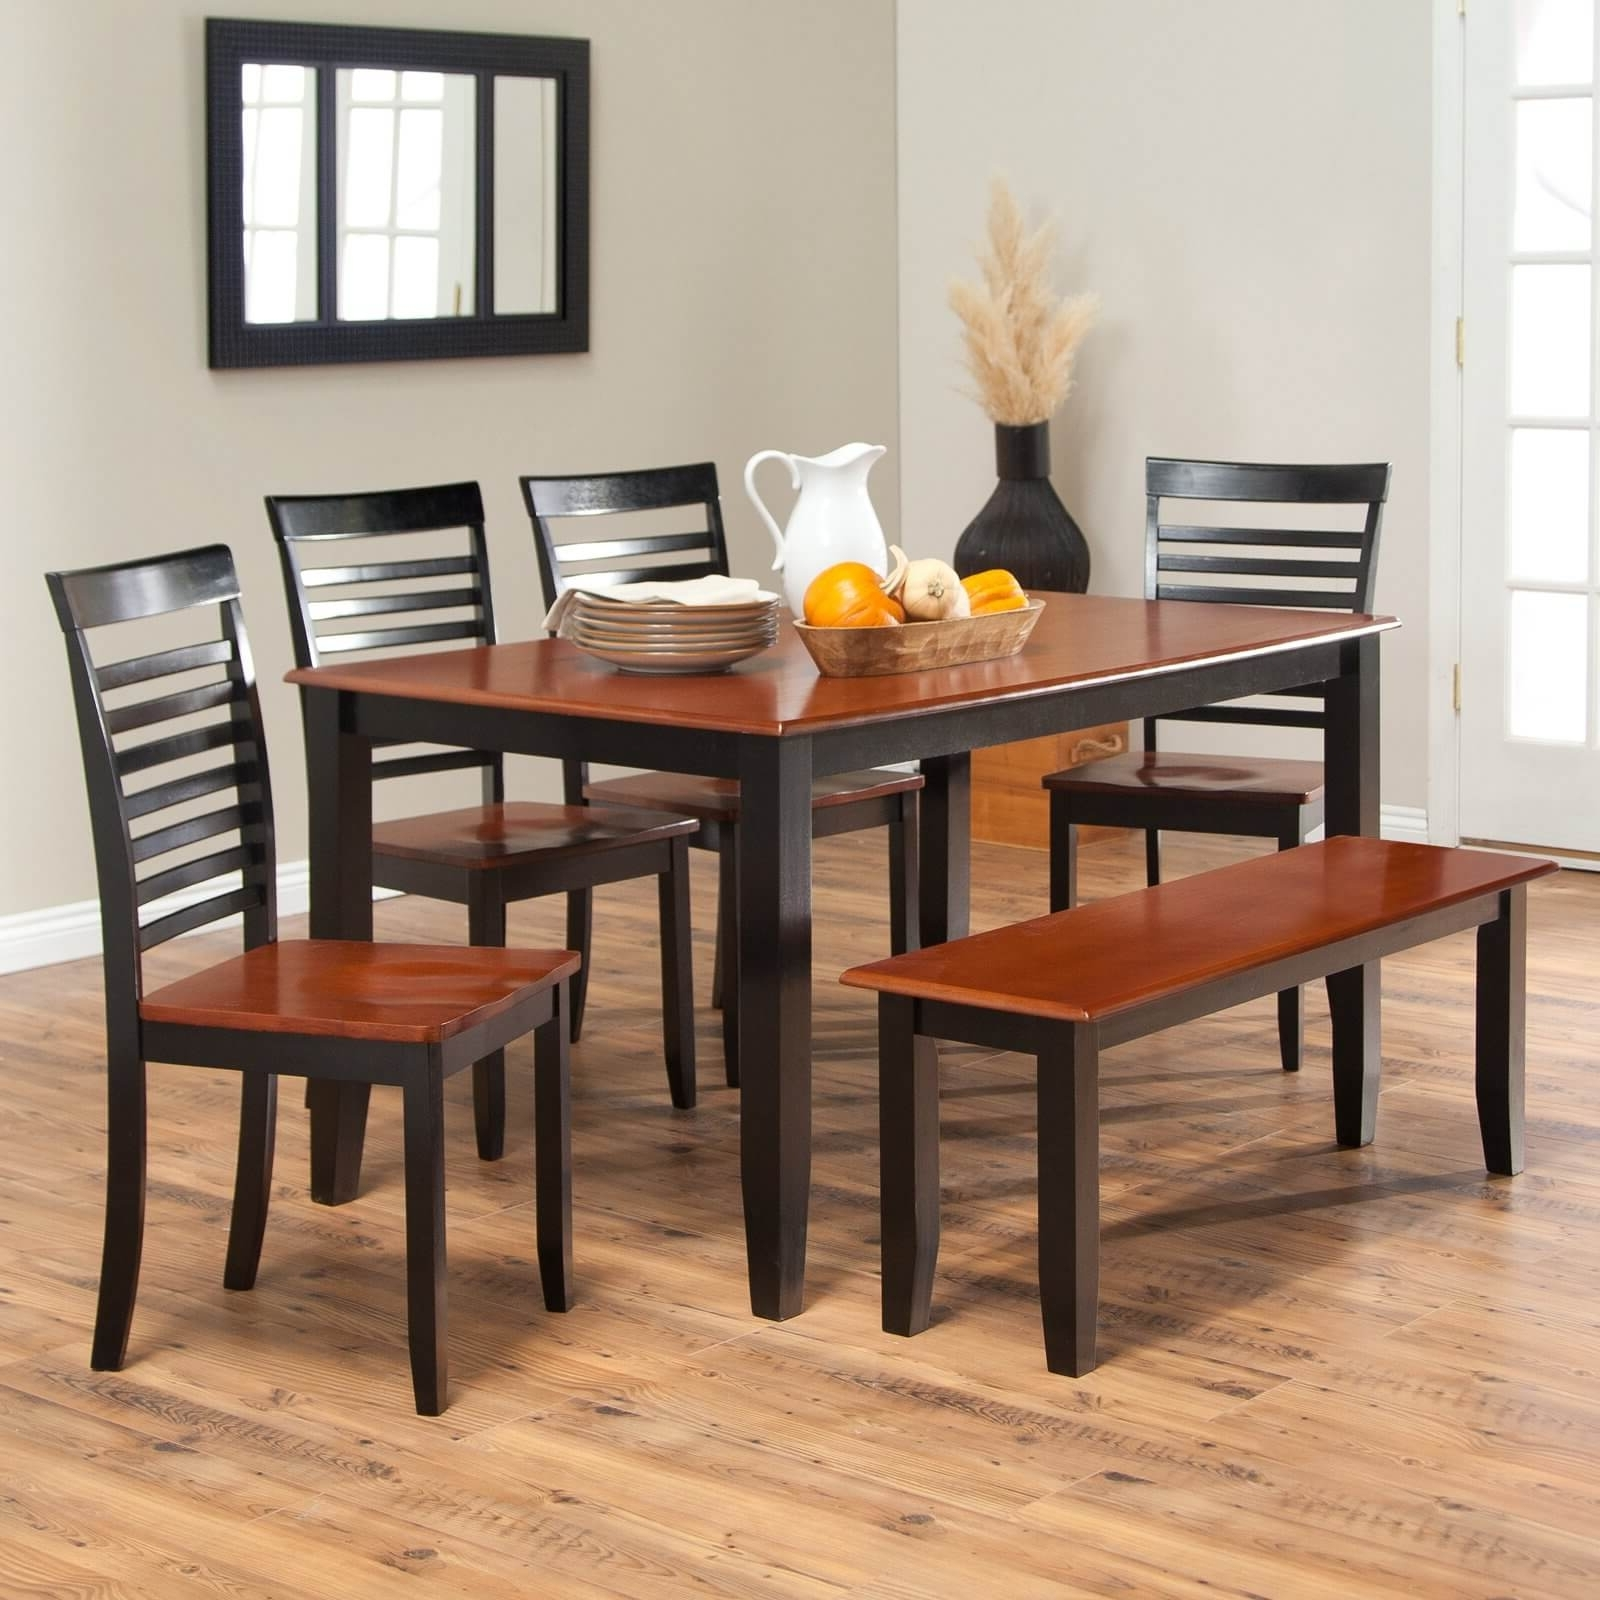 26 Dining Room Sets (Big And Small) With Bench Seating (2018) In Most Popular Craftsman 5 Piece Round Dining Sets With Side Chairs (Gallery 12 of 25)